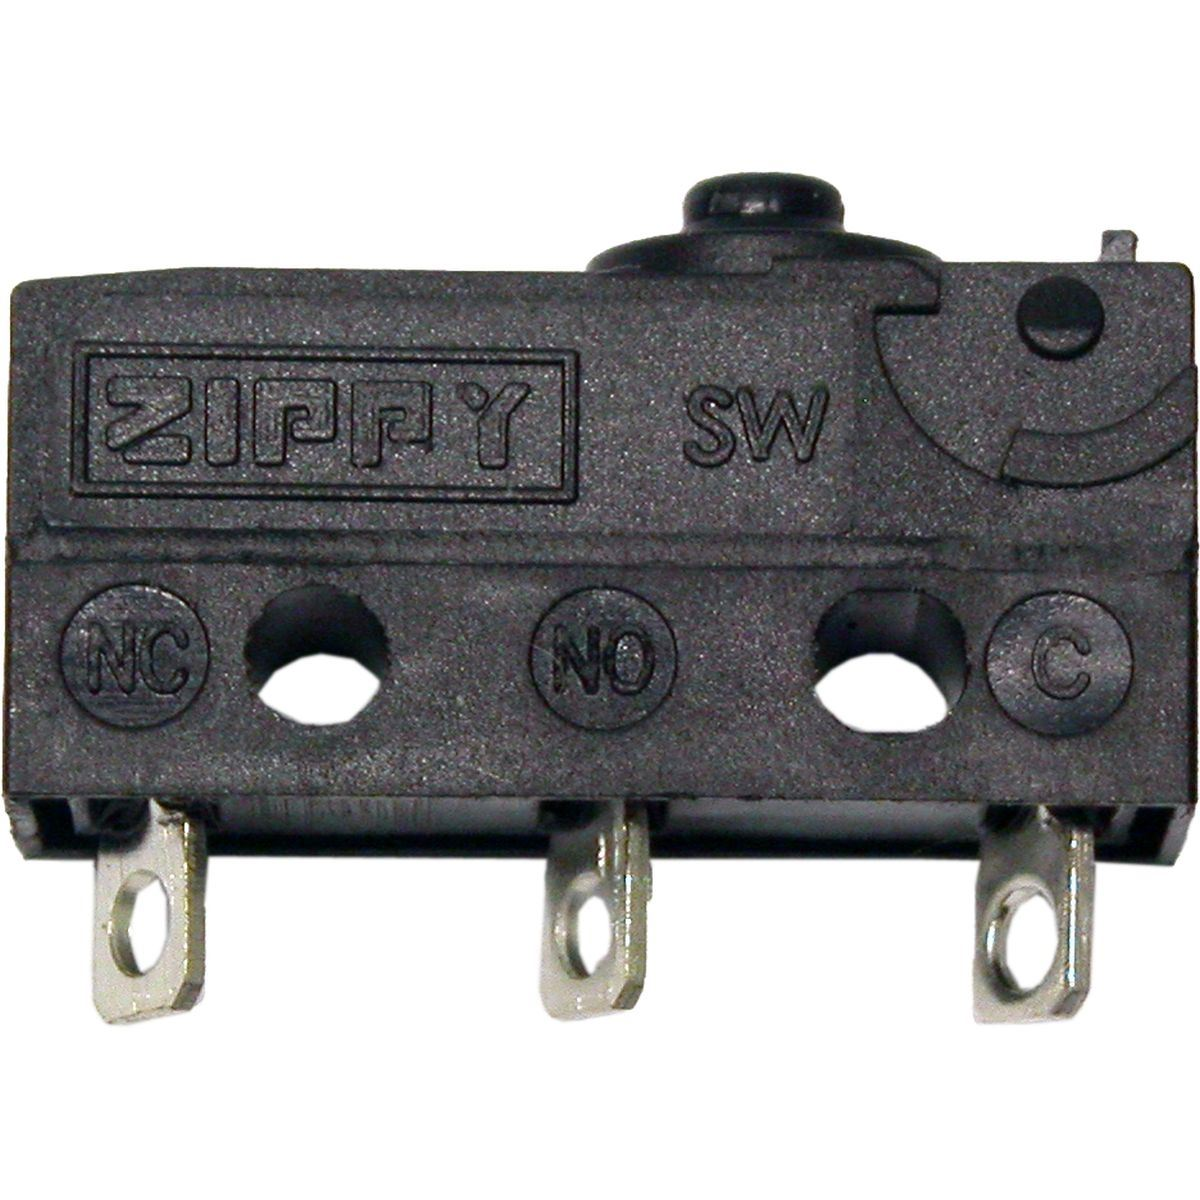 Aw Motorcycle Parts Switch Stop Front Rear Mini Micro Microswitch Picture Of European Models